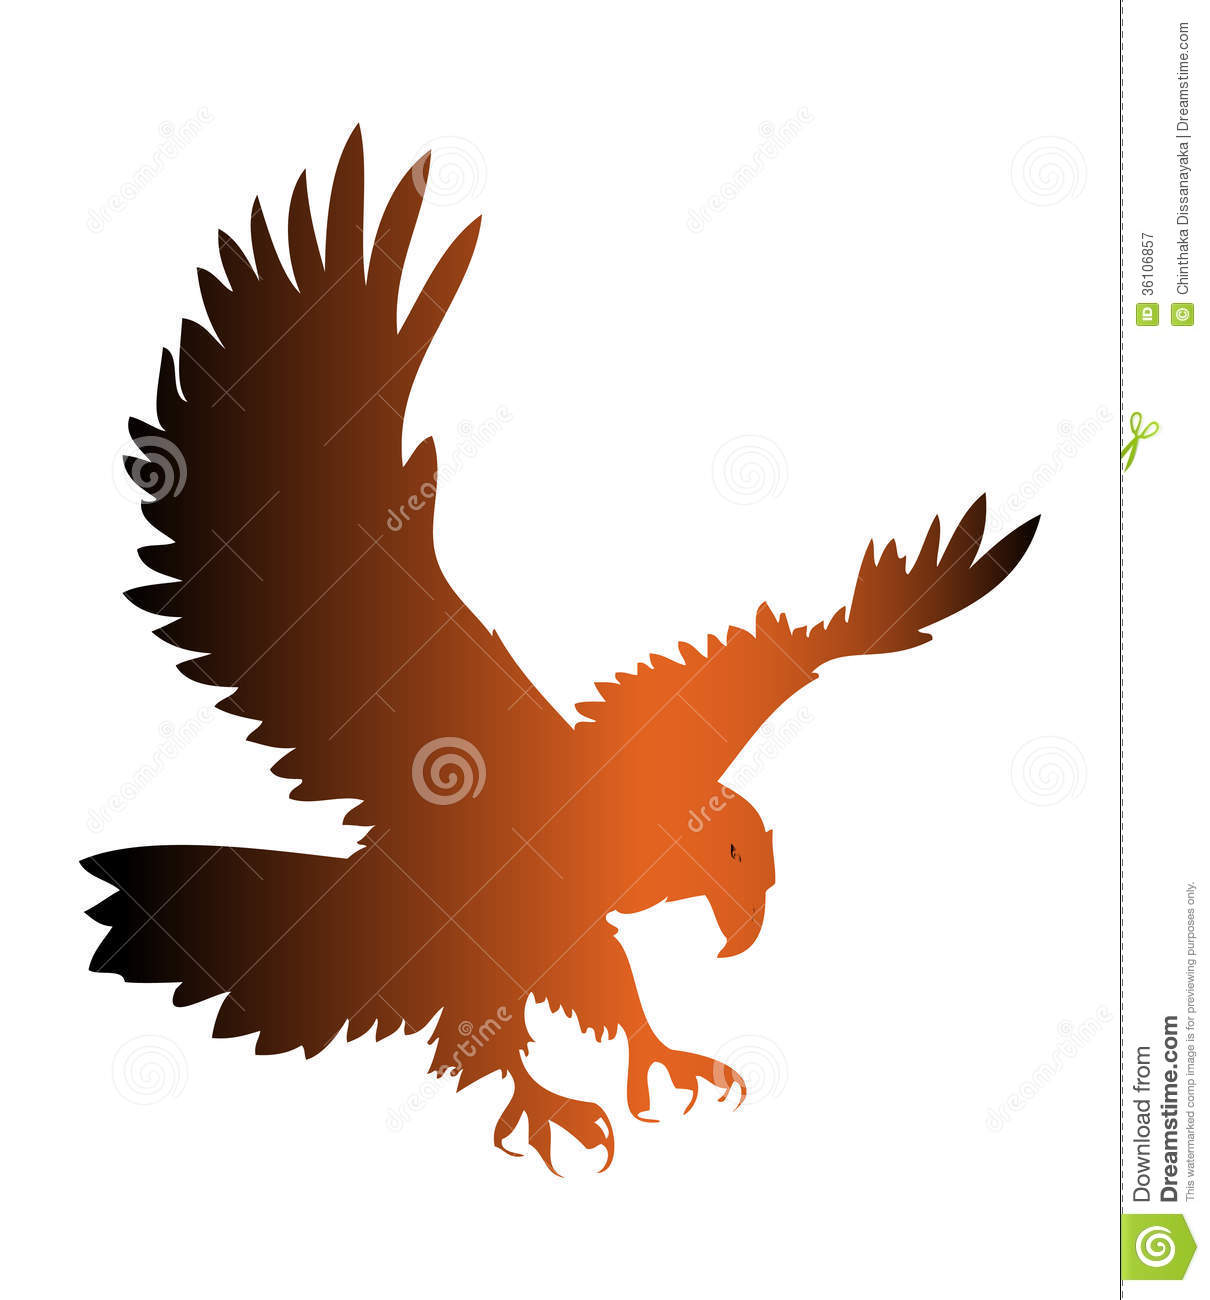 Eagle silhouette isolated on white. Eagle Silhouette Vector